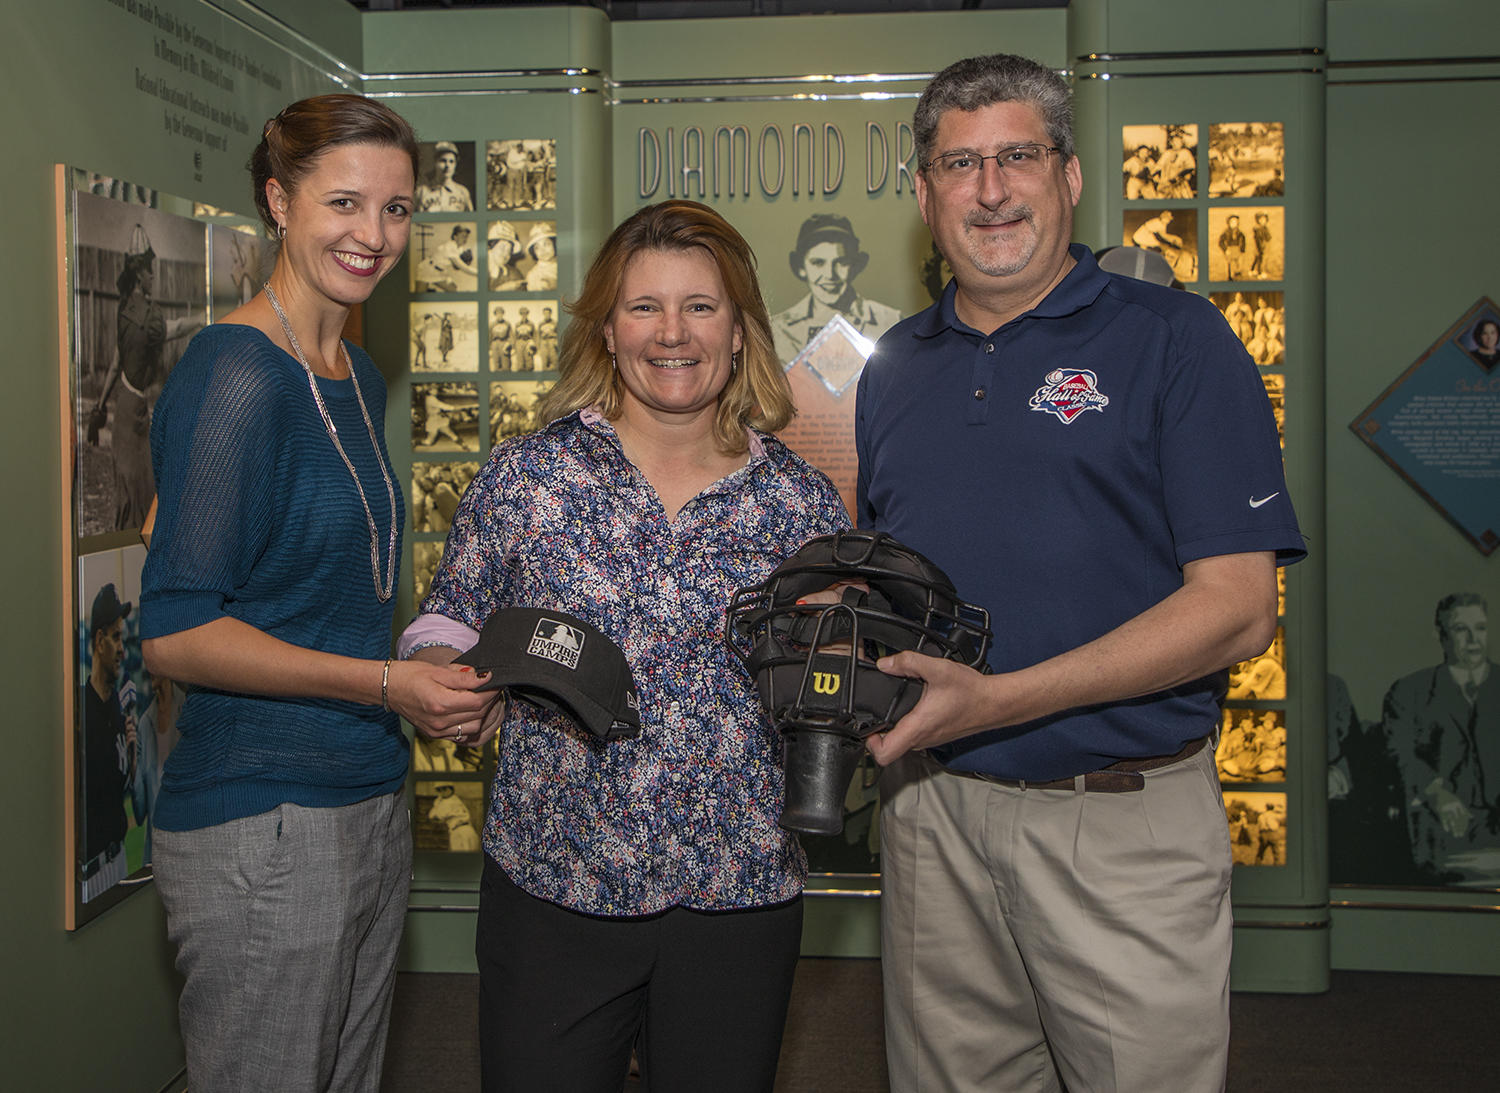 Jen Pawol poses with her artifacts in the <em>Diamond Dreams</em> exhibit at the Hall of Fame, alongside assistant curator Gabrielle Augustine (left) and vice president, exhibitions & collections Erik Strohl (right). (By Photographer Milo Stewart Jr./National Baseball Hall of Fame and Museum)